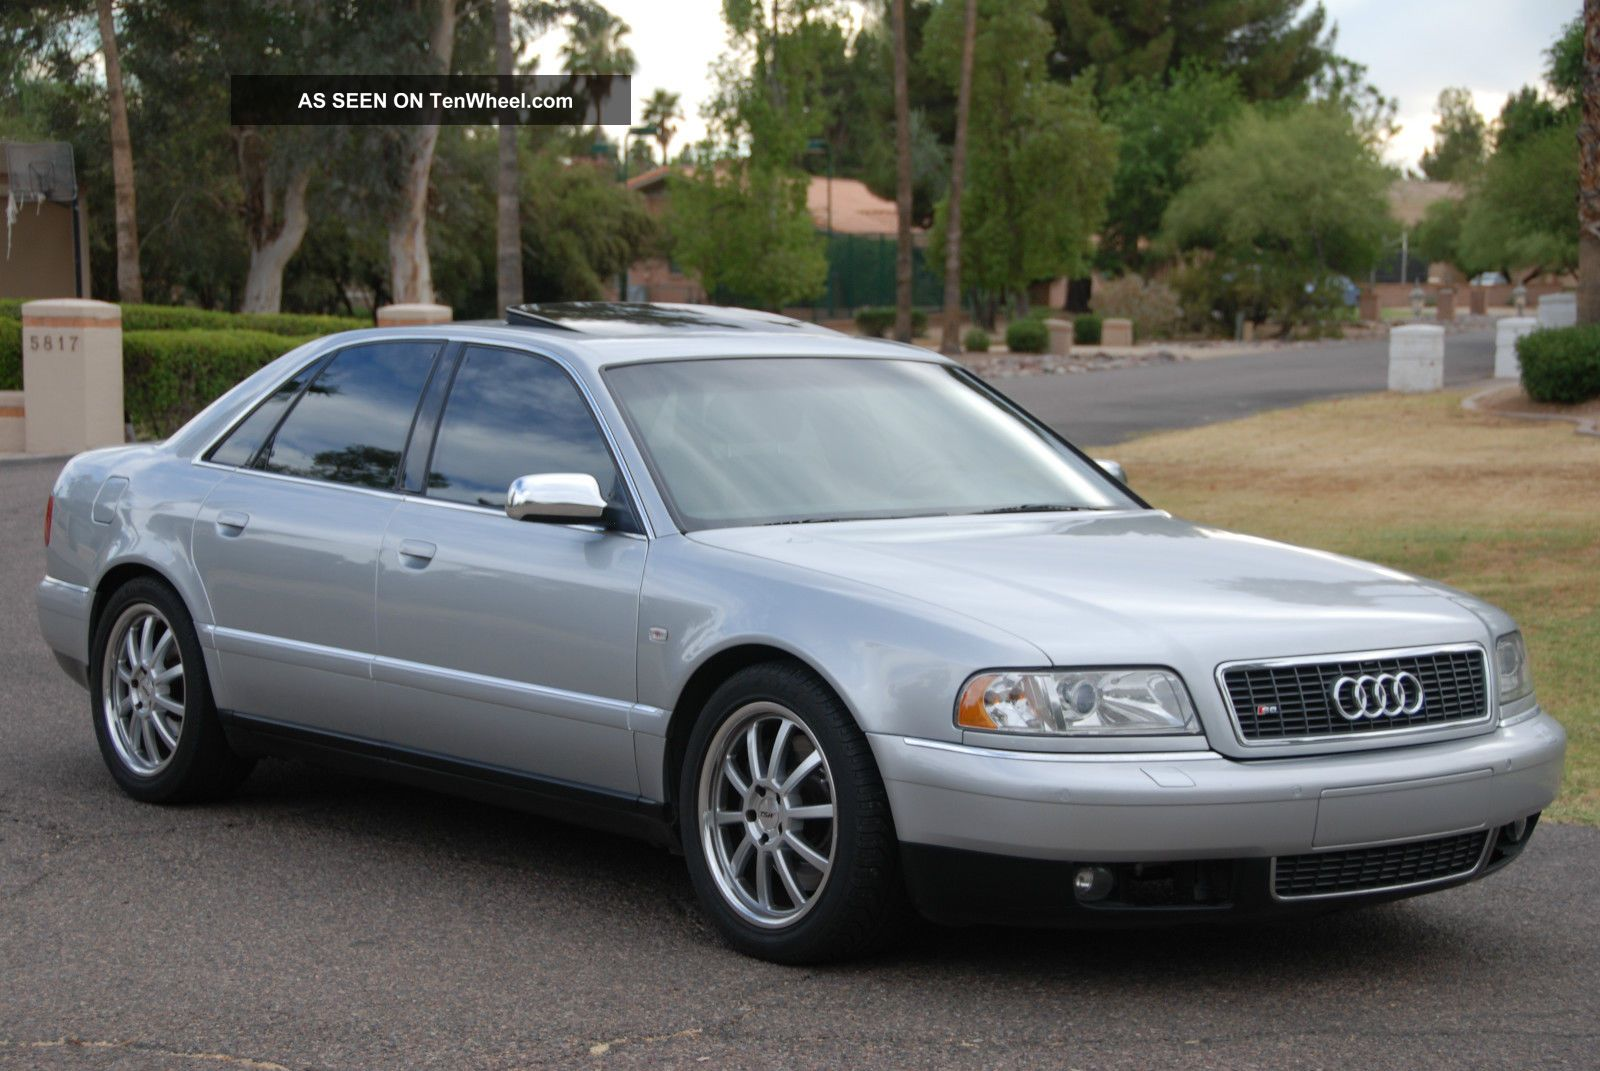 2002 Audi D2 S8 Rust Arizona Car S8 photo